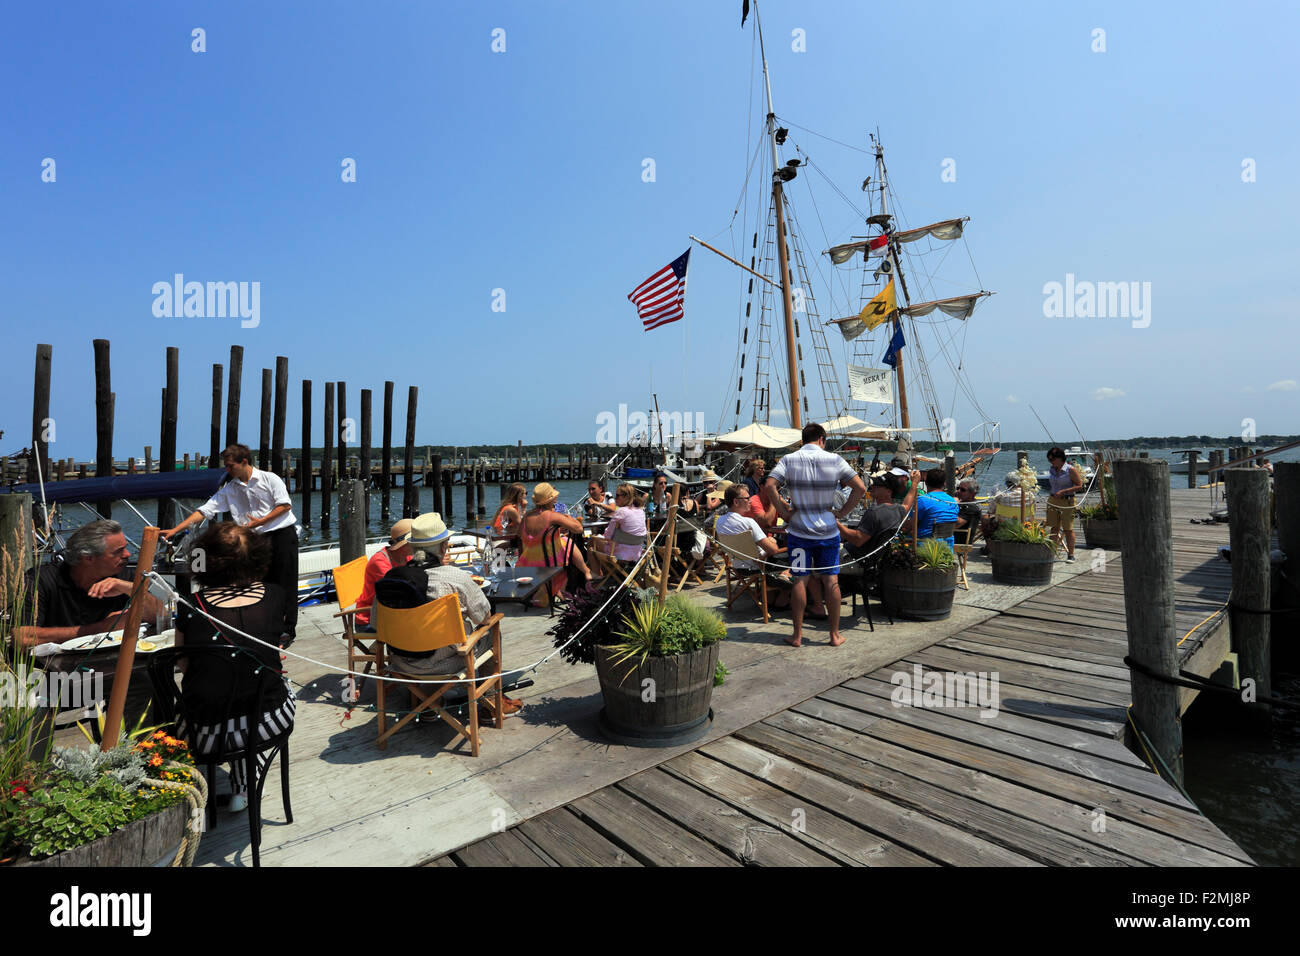 Outdoor dining at Greenport Harbor Long Island New York - Stock Image